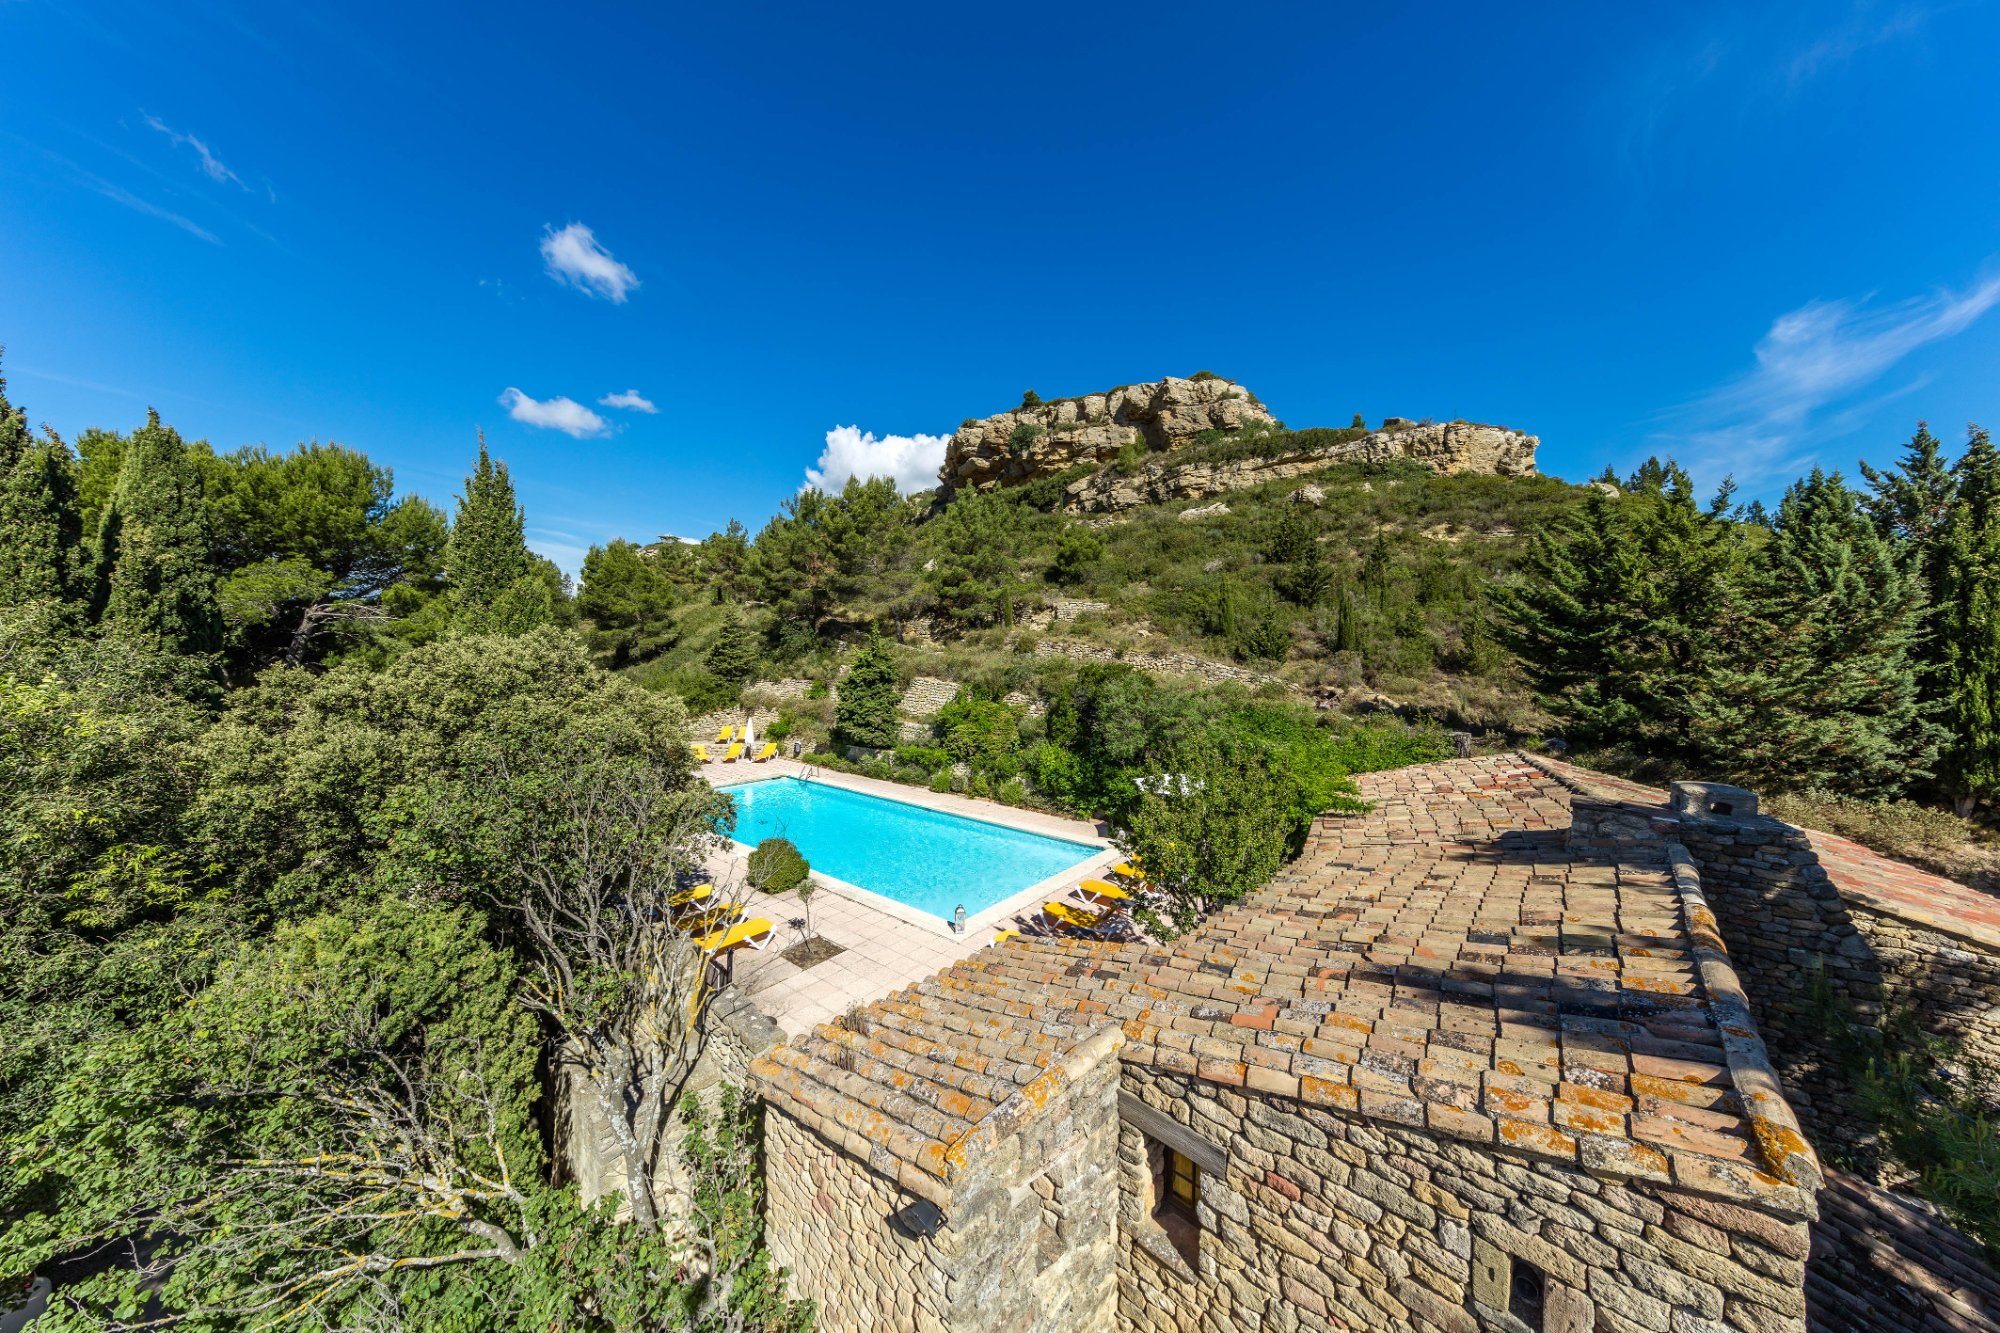 Garrigae abbaye de sainte croix updated 2017 prices for Abbaye de sainte croix salon de provence restaurant